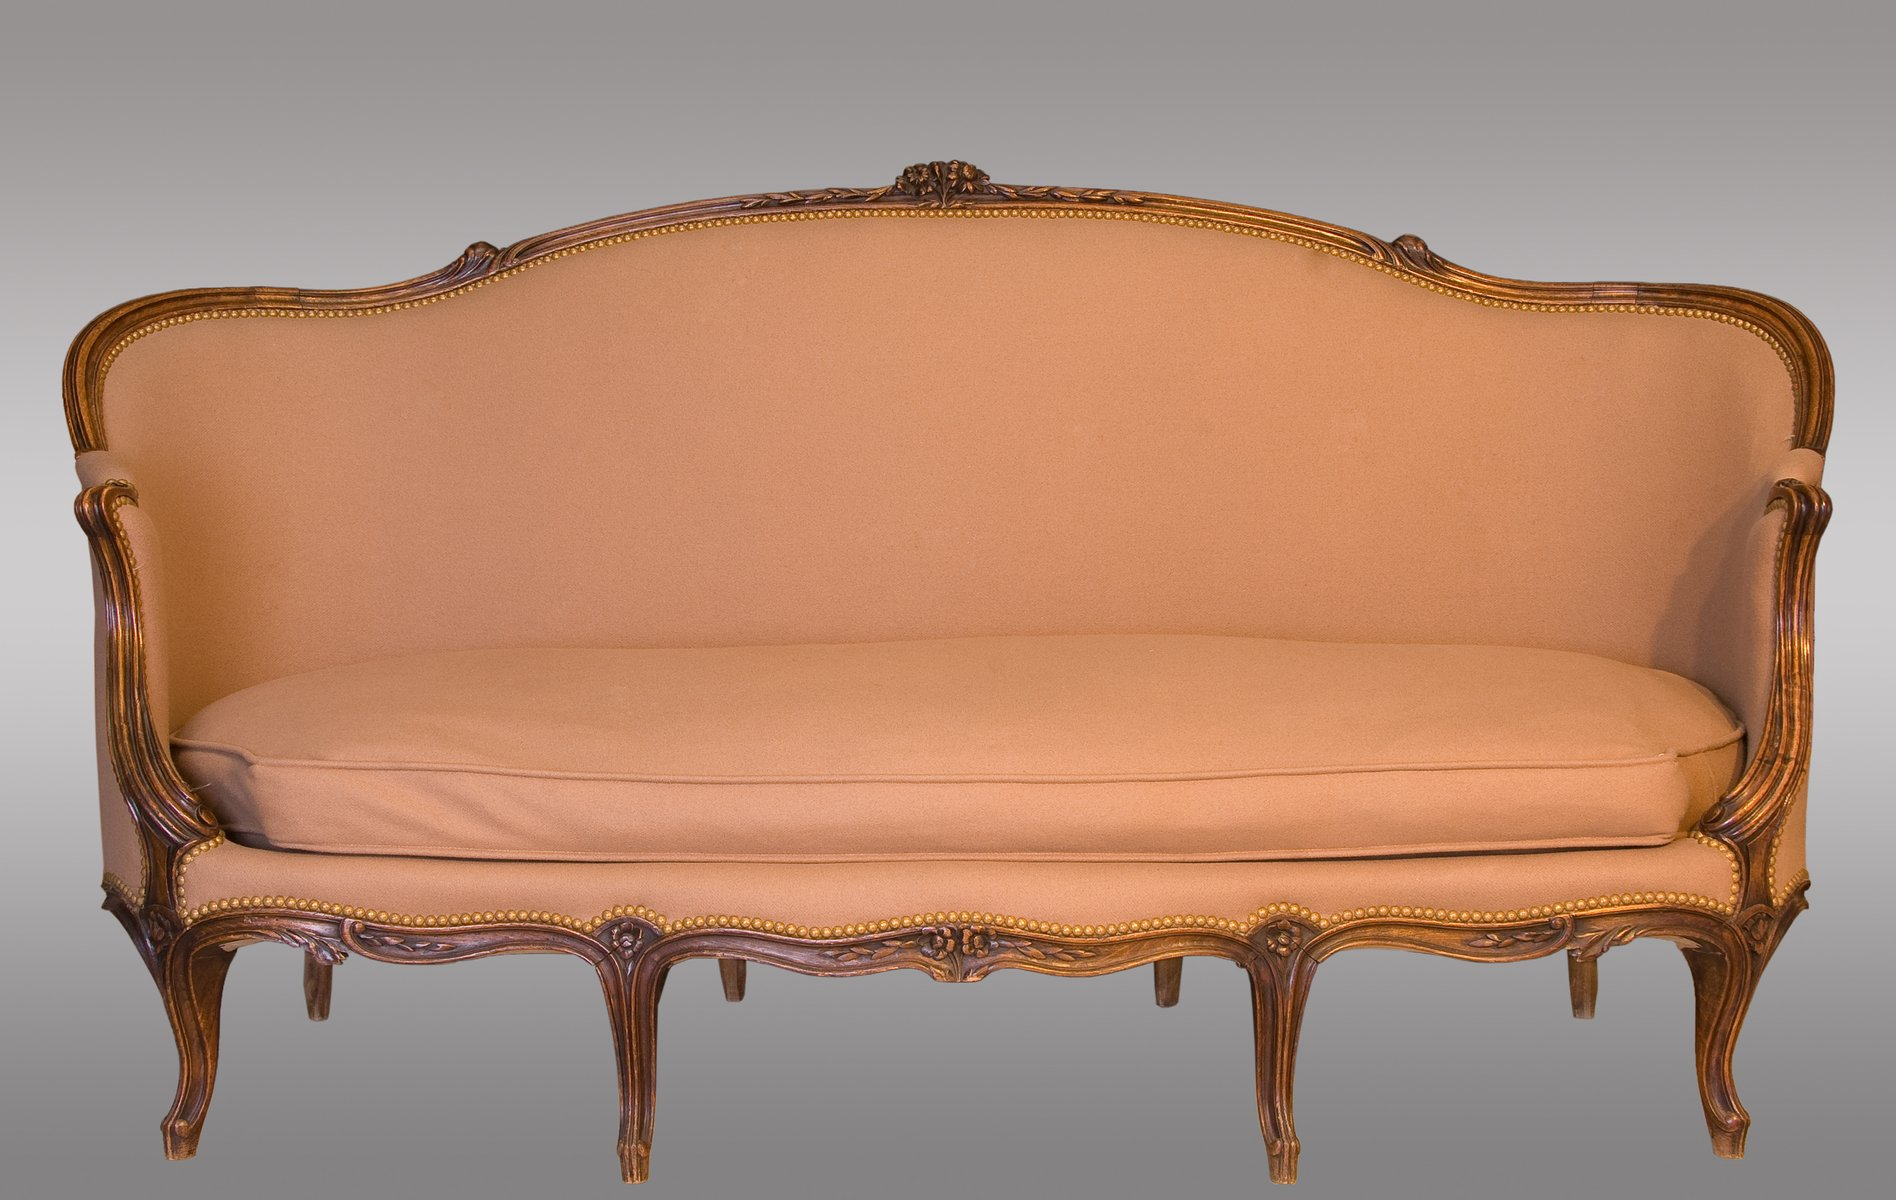 Antique french louis xv canap for sale at pamono for Canape style louis xv